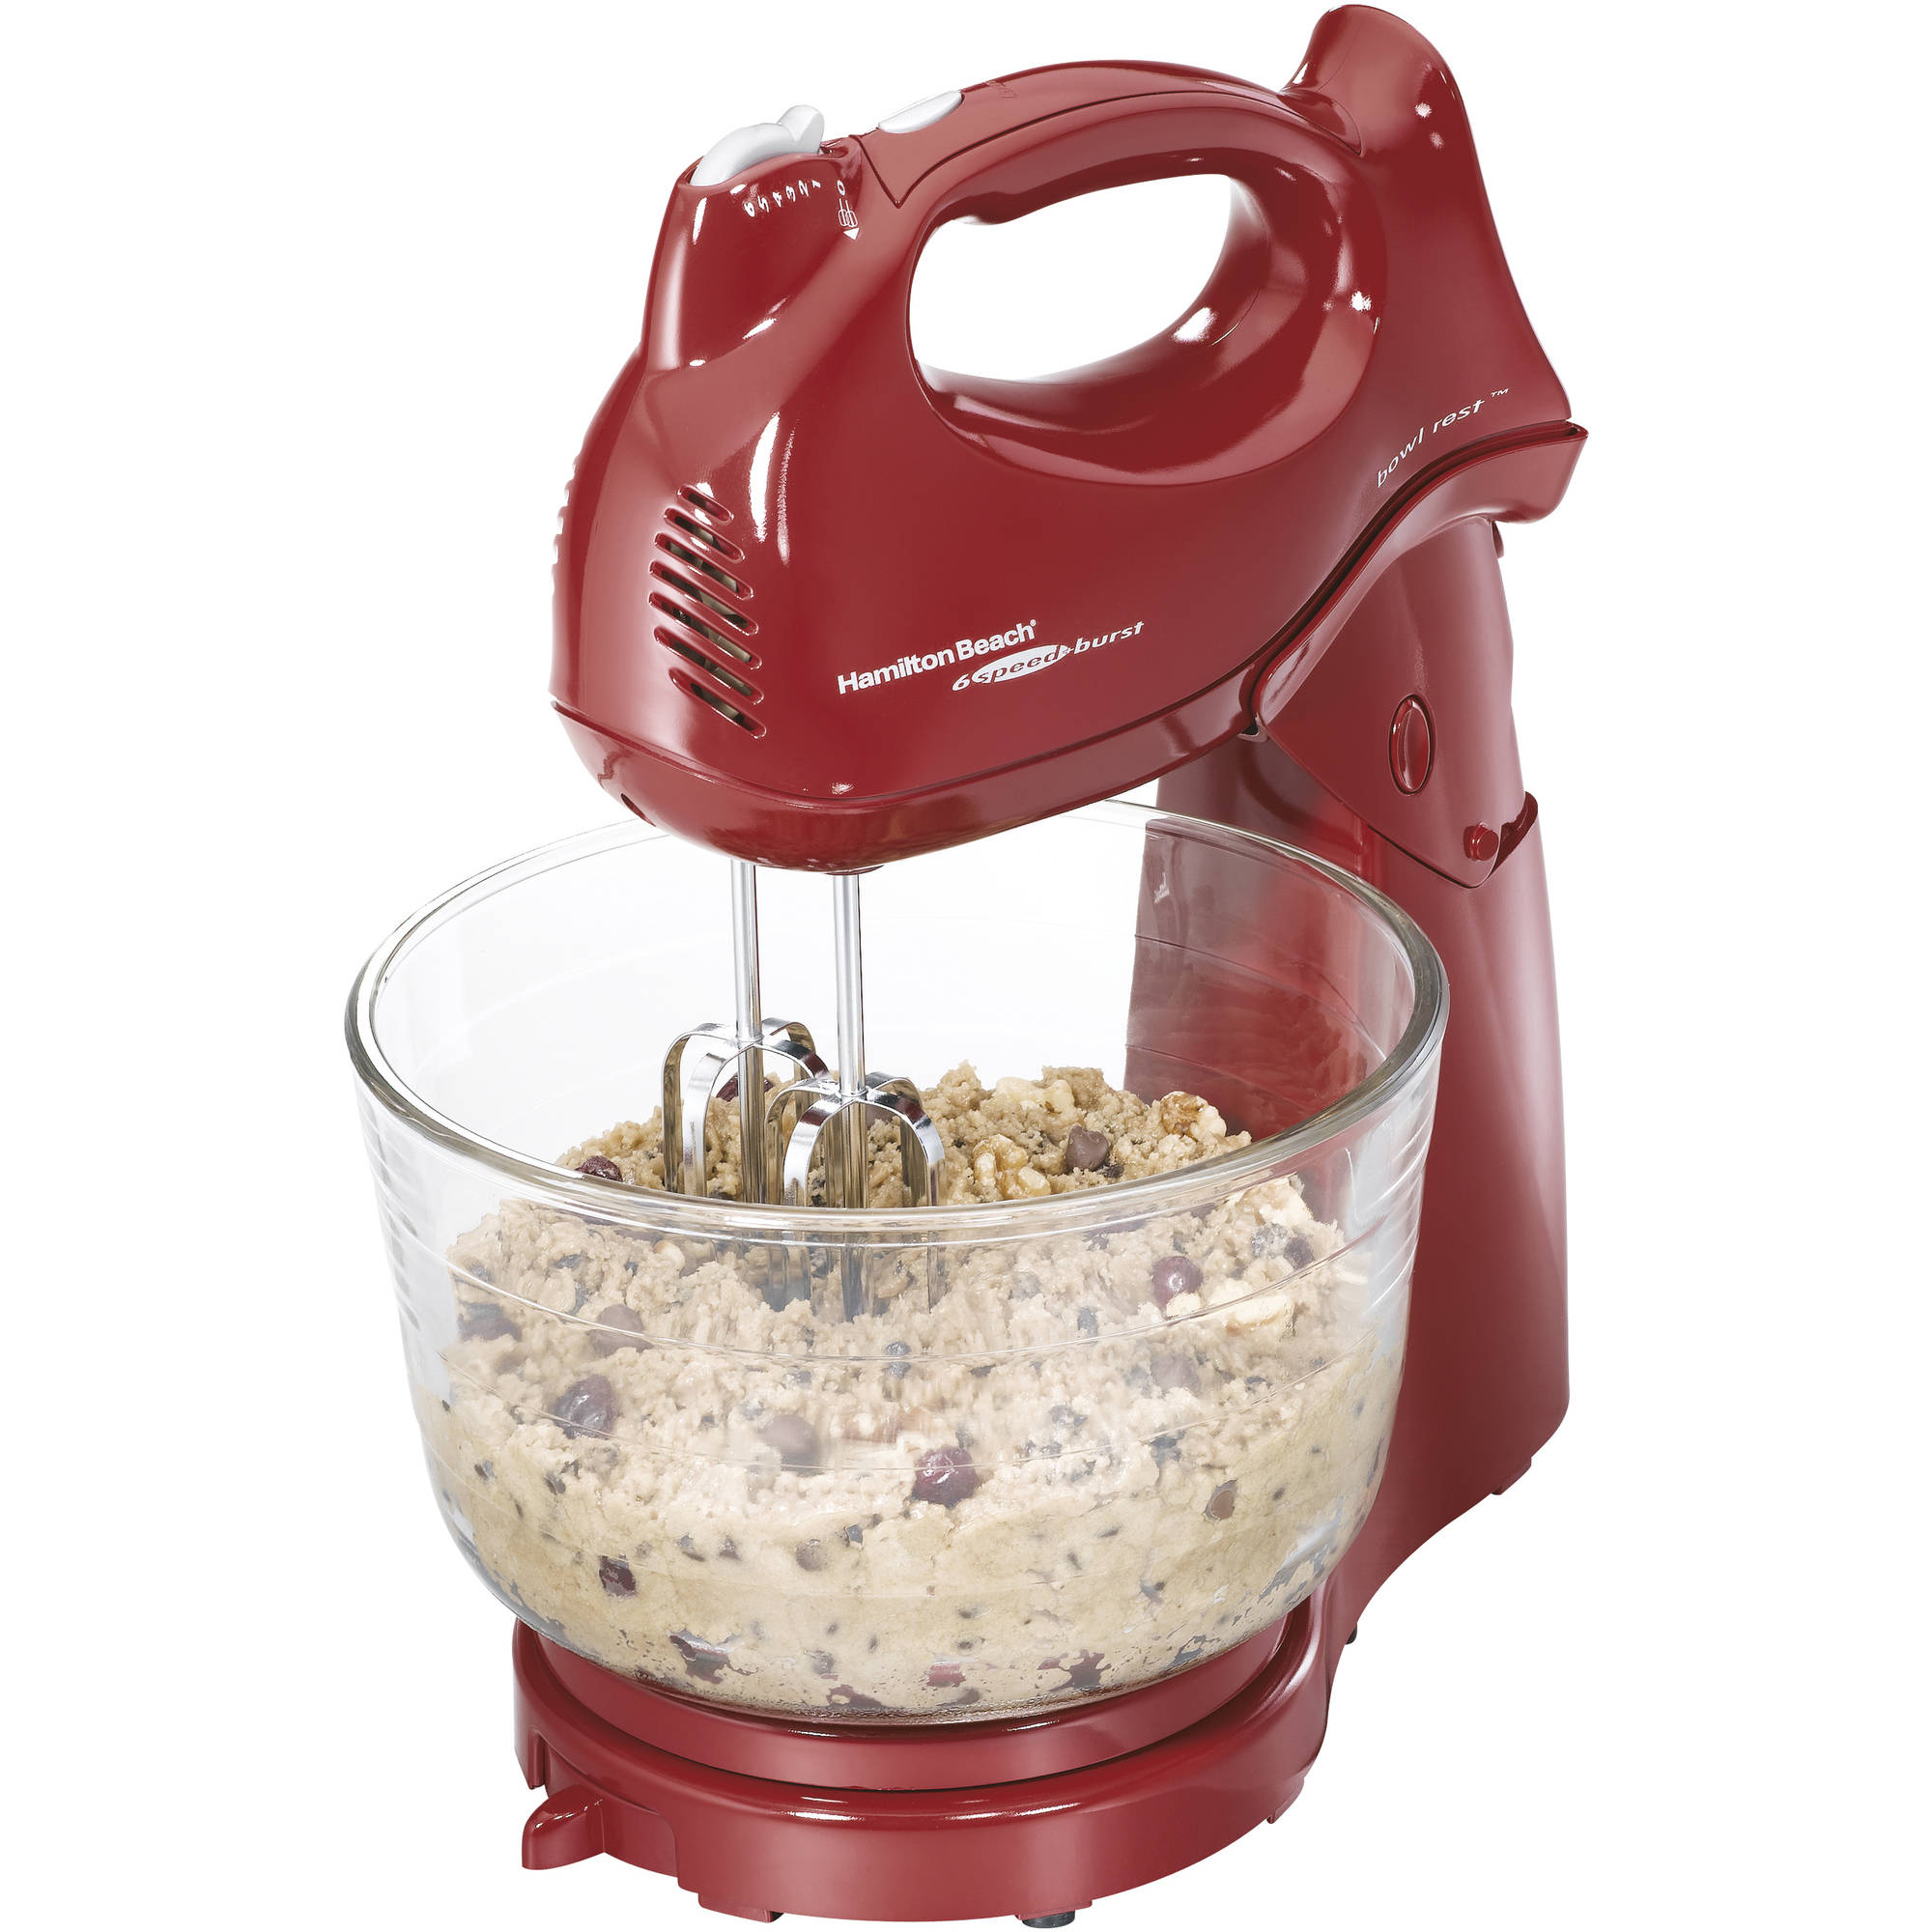 Hamilton Beach Power Deluxe 4 Quart Stand Mixer, Red (64699)